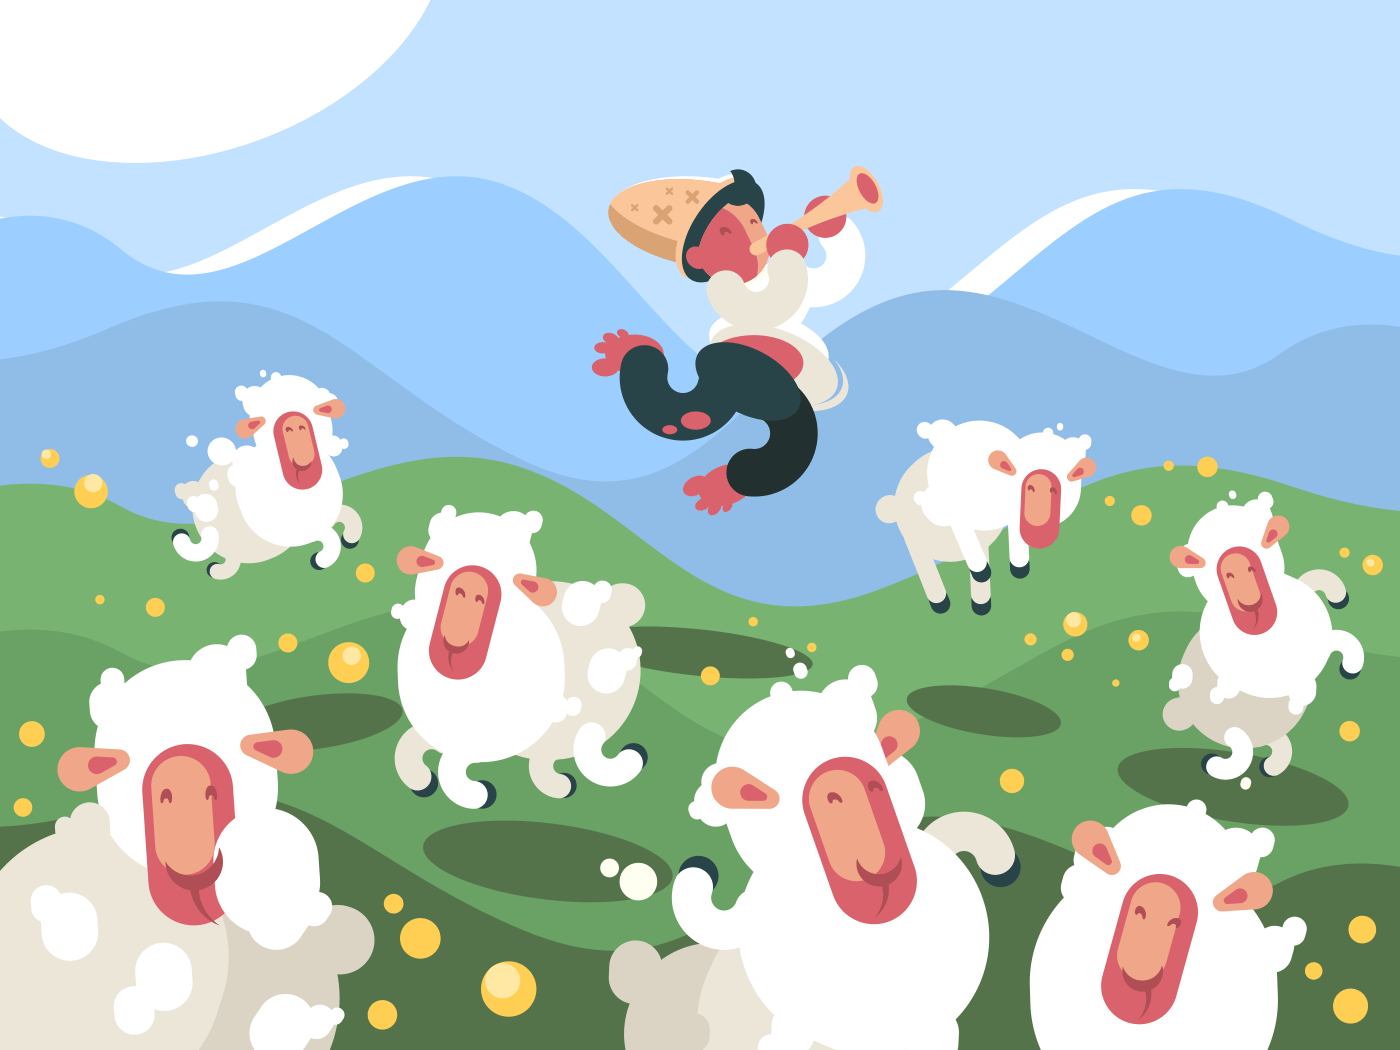 Shepherd grazes herd of sheep on green meadow. Vector illustration